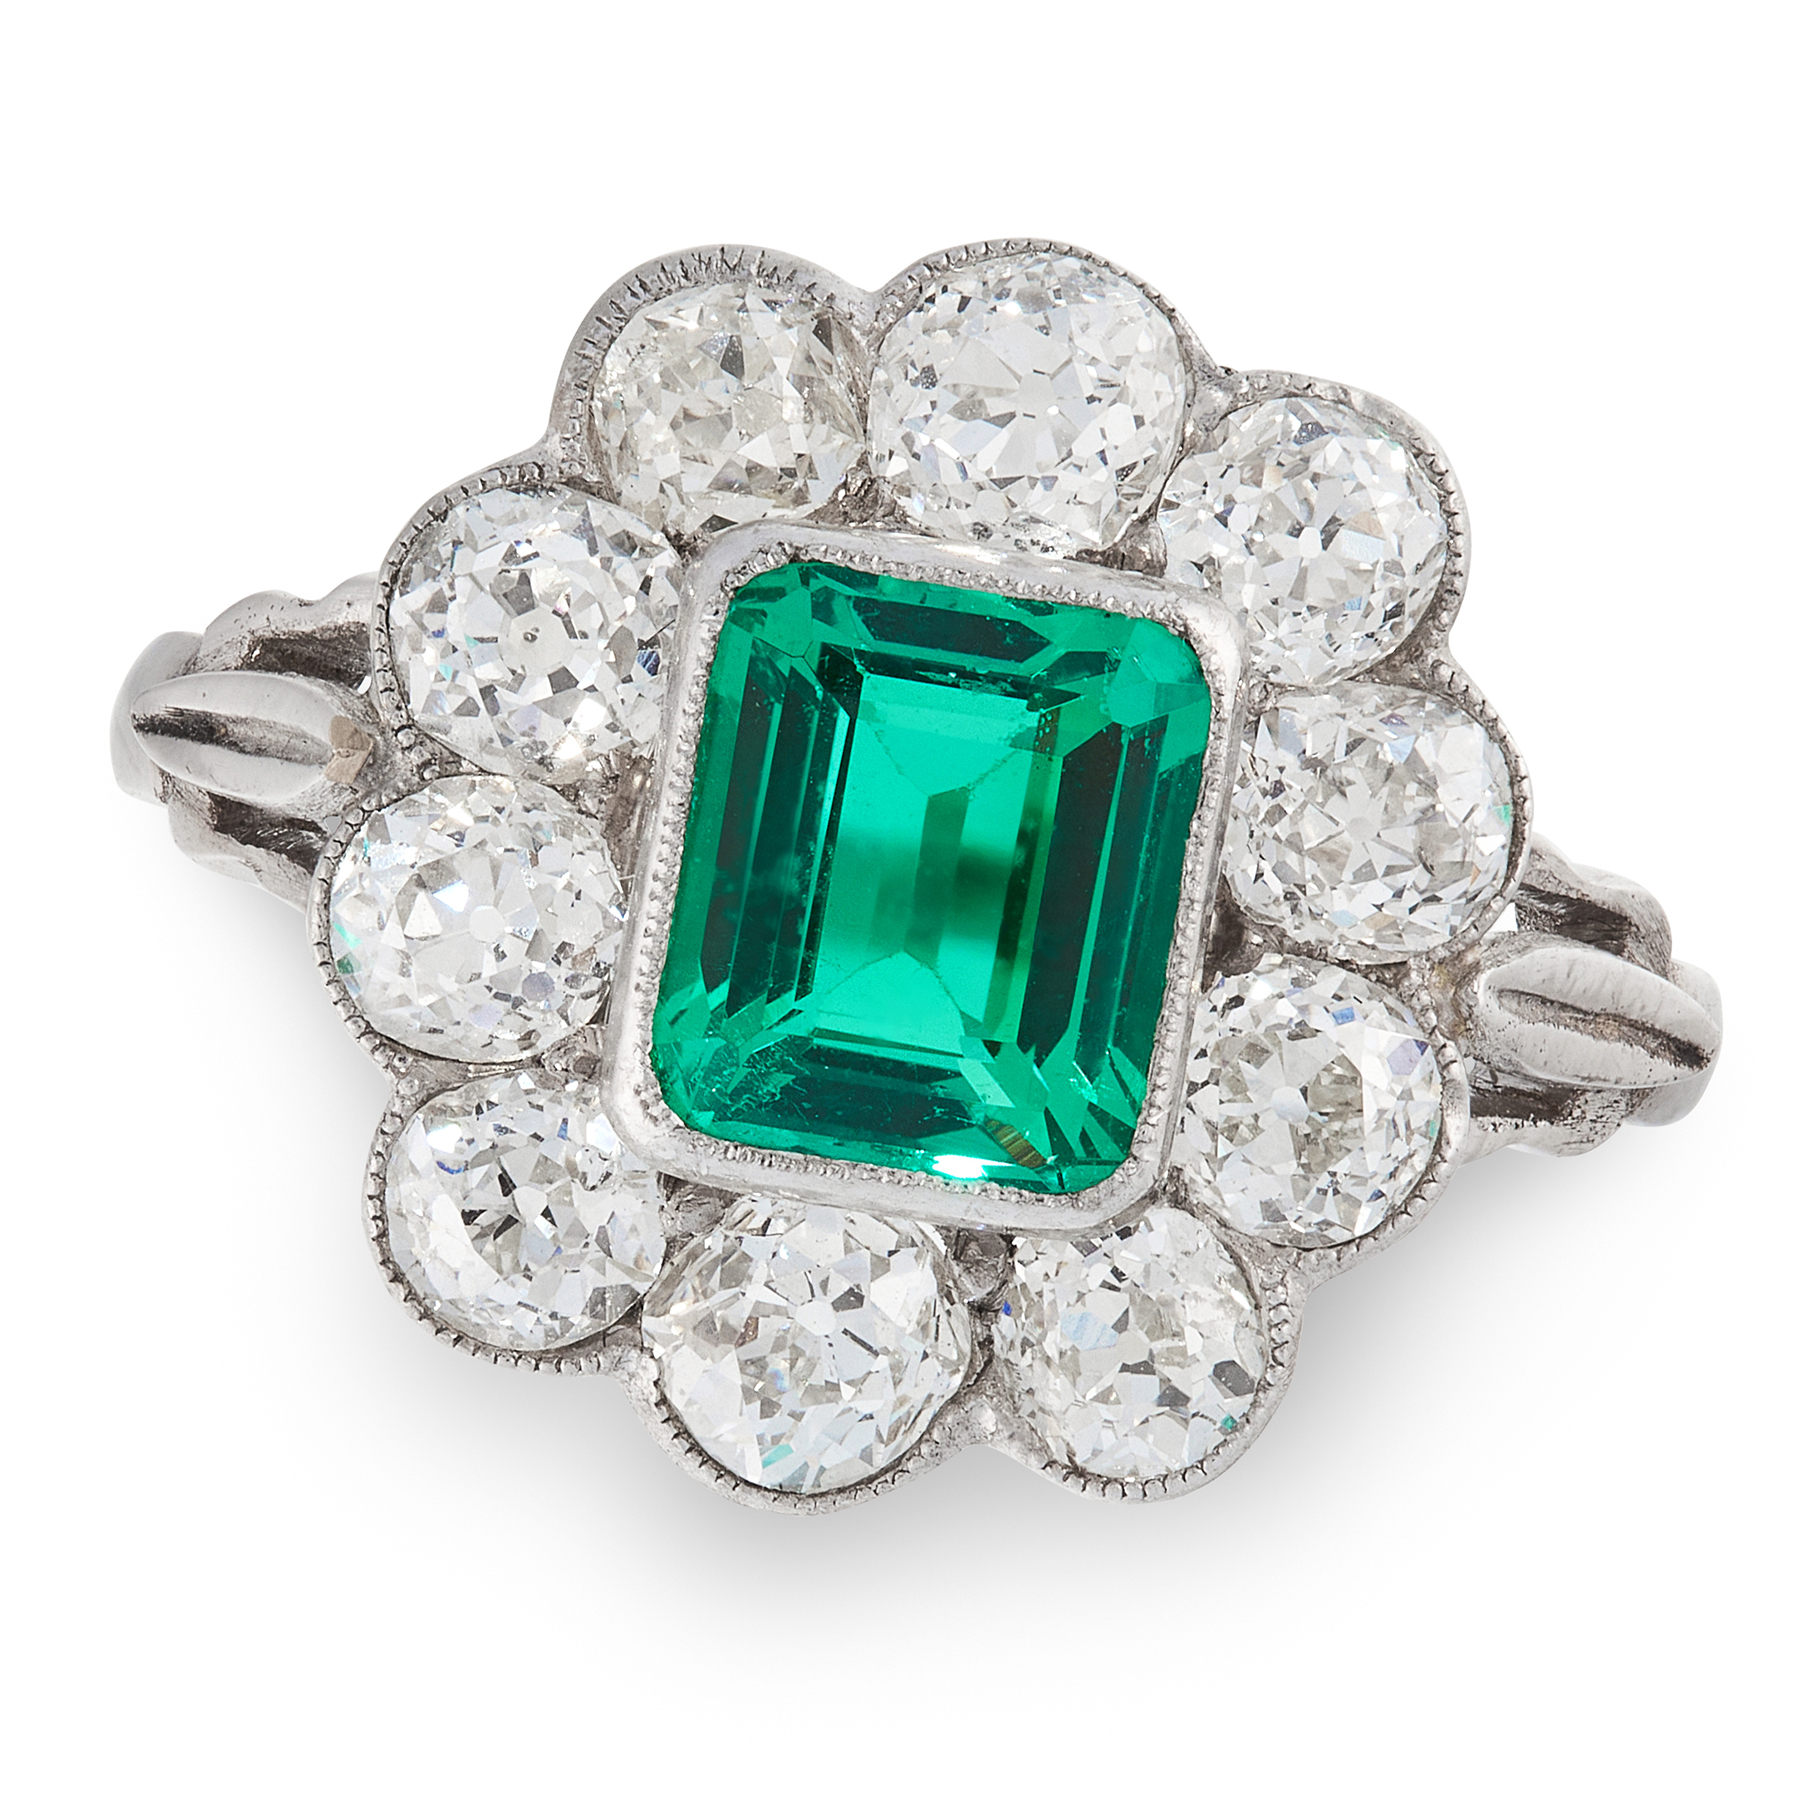 A COLOMBIAN EMERALD AND DIAMOND CLUSTER RING set with an octagonal cut emerald of 1.55 carats, in